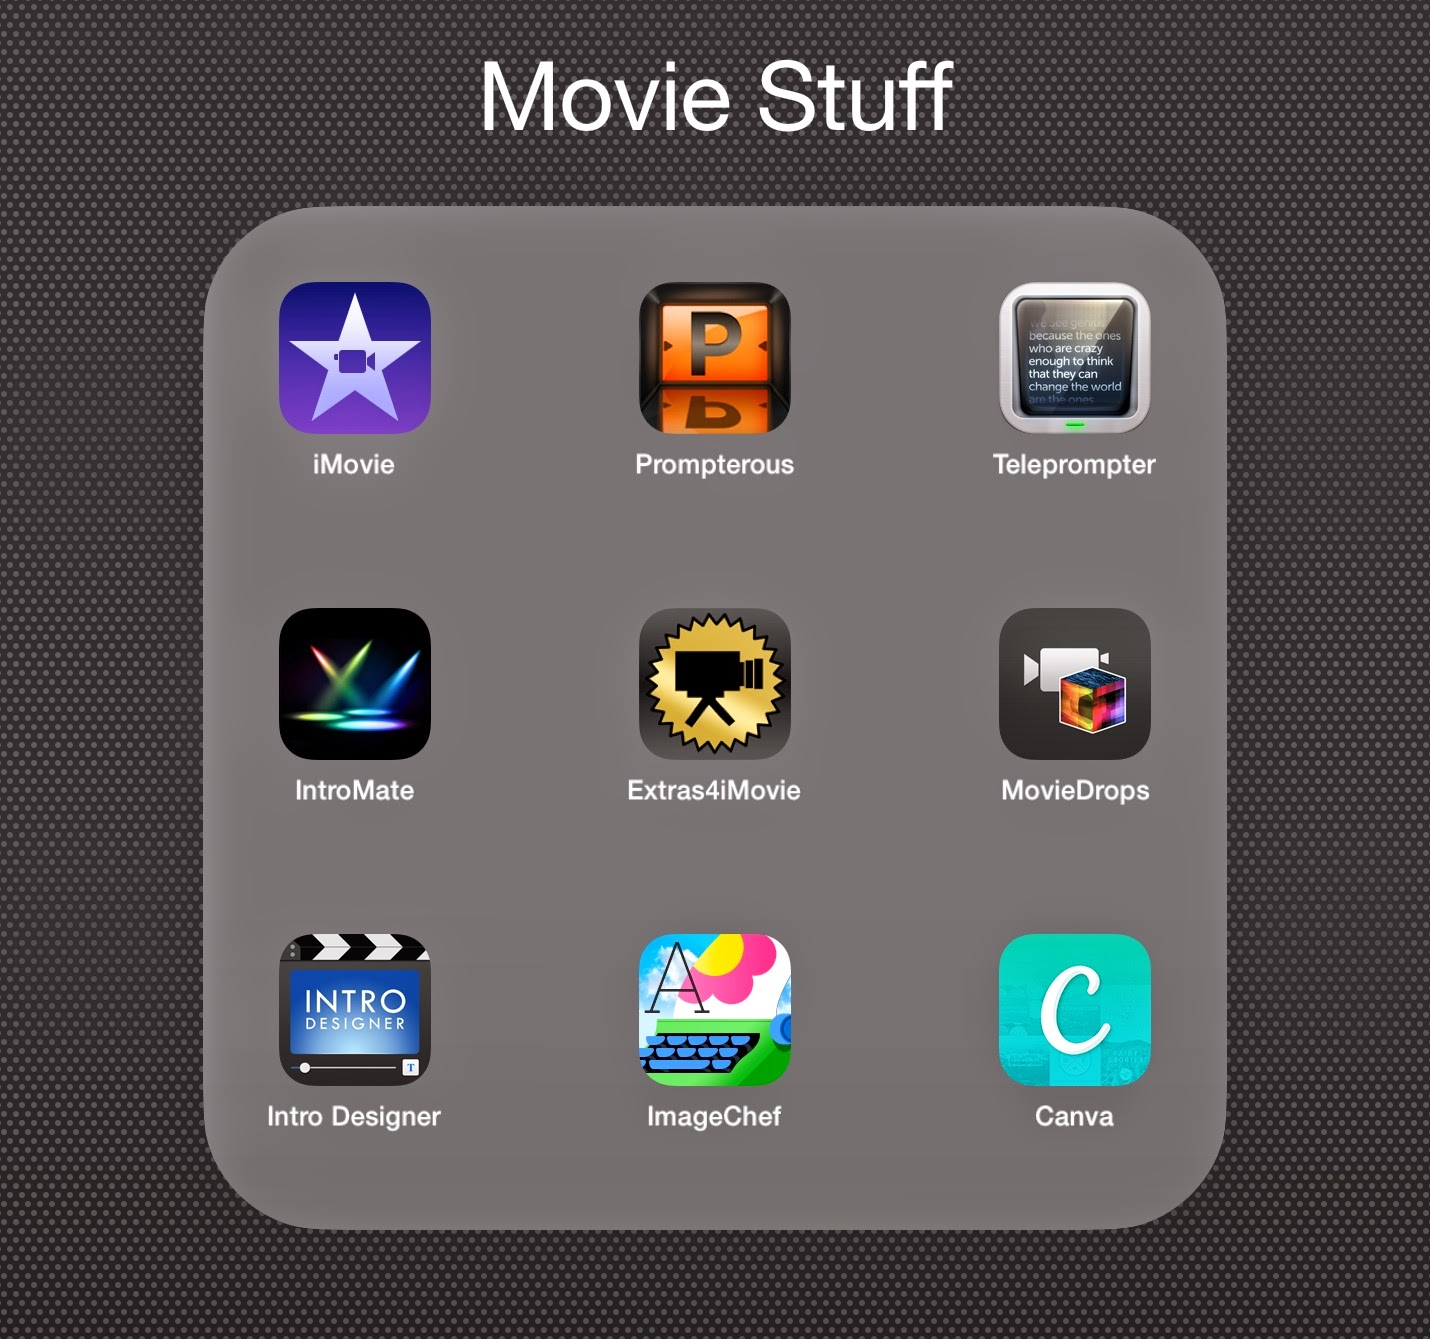 How to free up iPhone storage space by cleaning out iMovie files ...